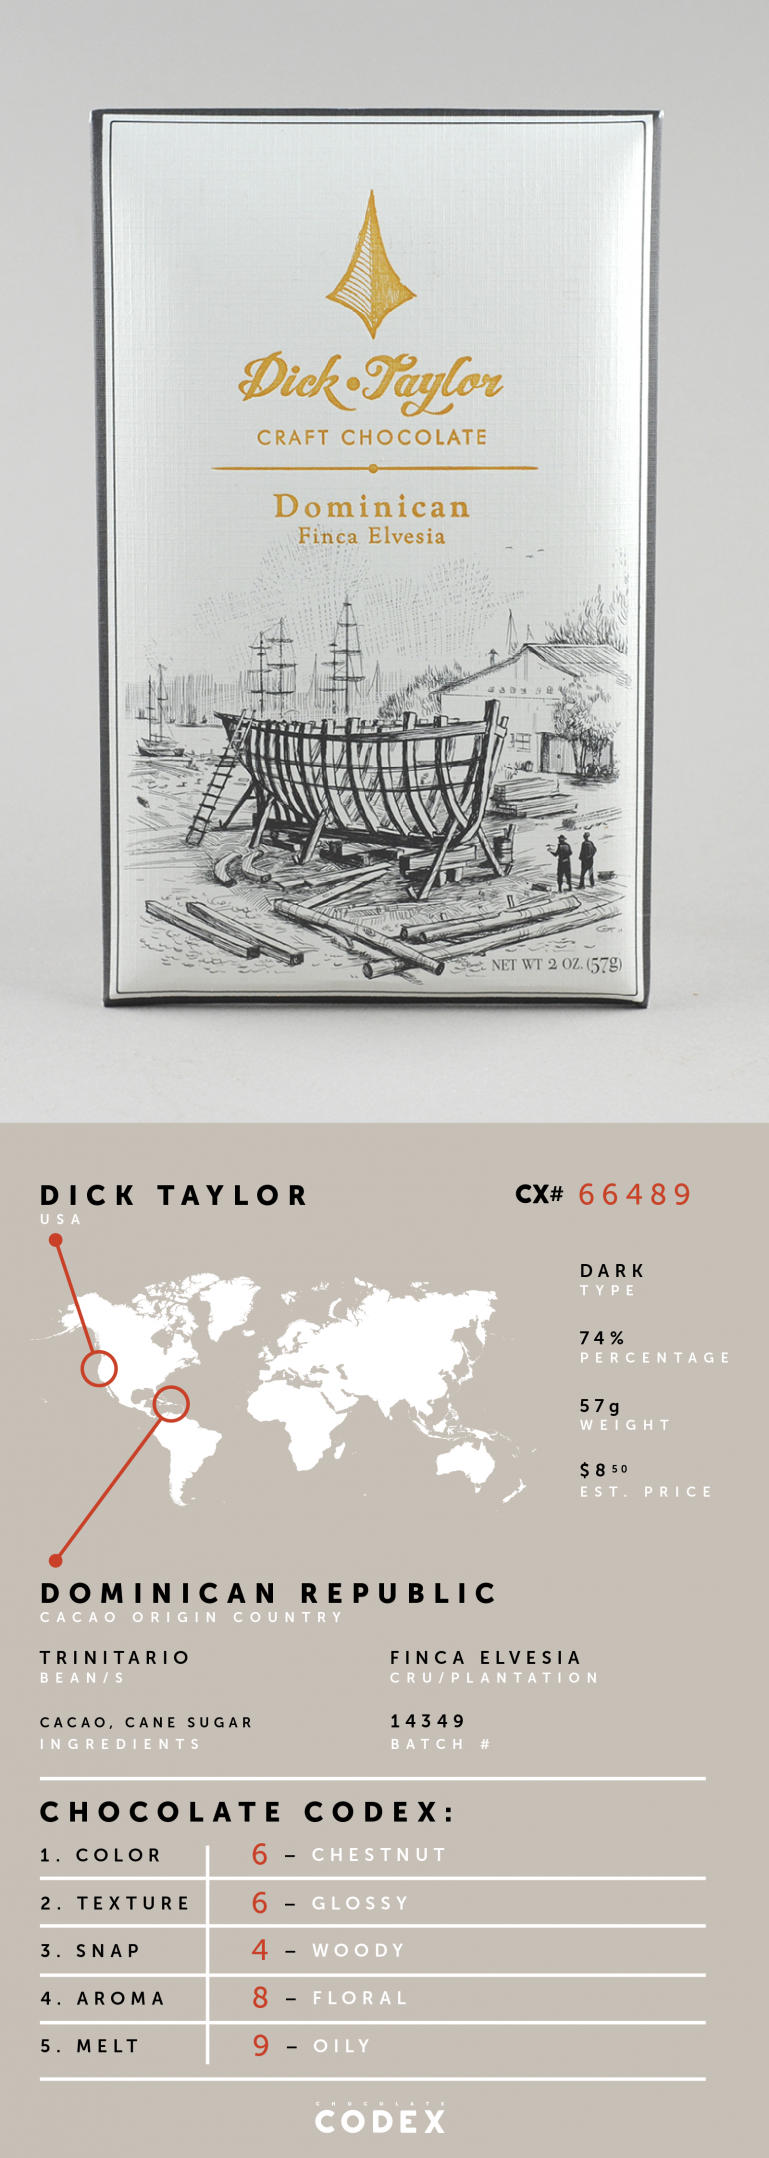 Chocolate-Codex-Reviews-Dick-Taylor-Dominican-Republic-74